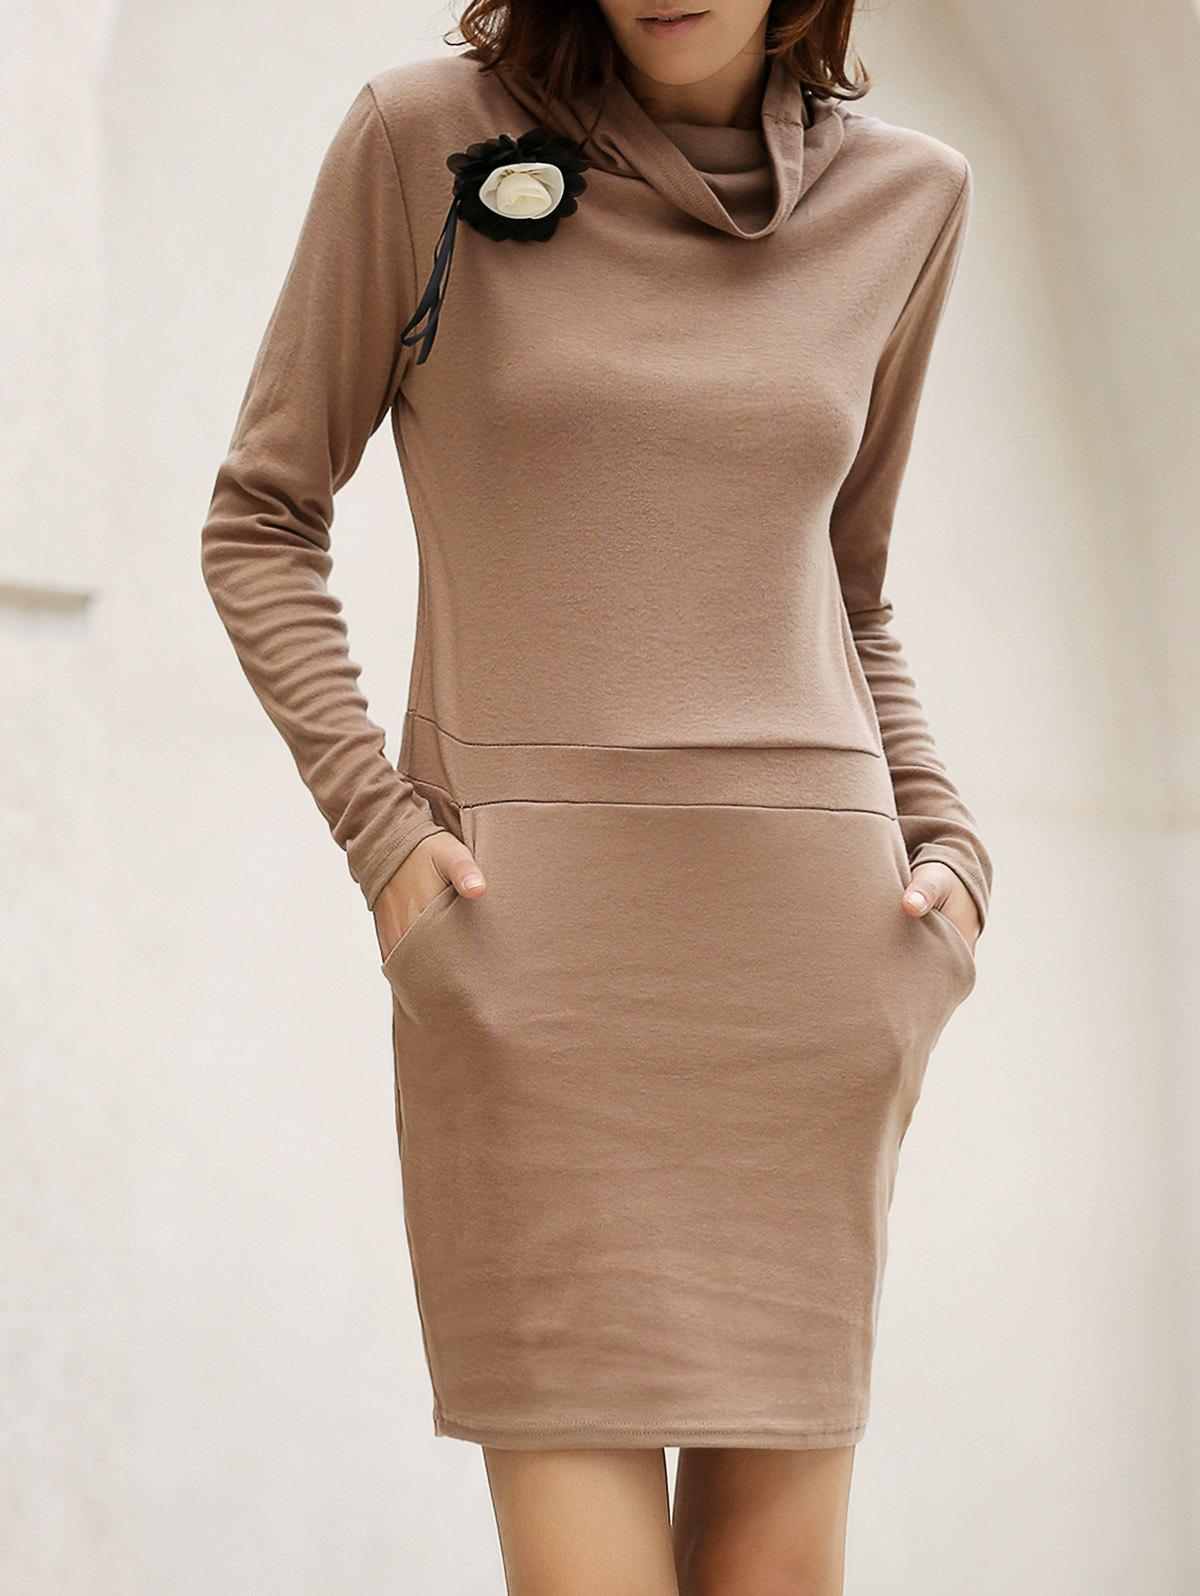 Discount Stylish Cowl Neck Long Sleeve Solid Color Women's Bodycon Dress